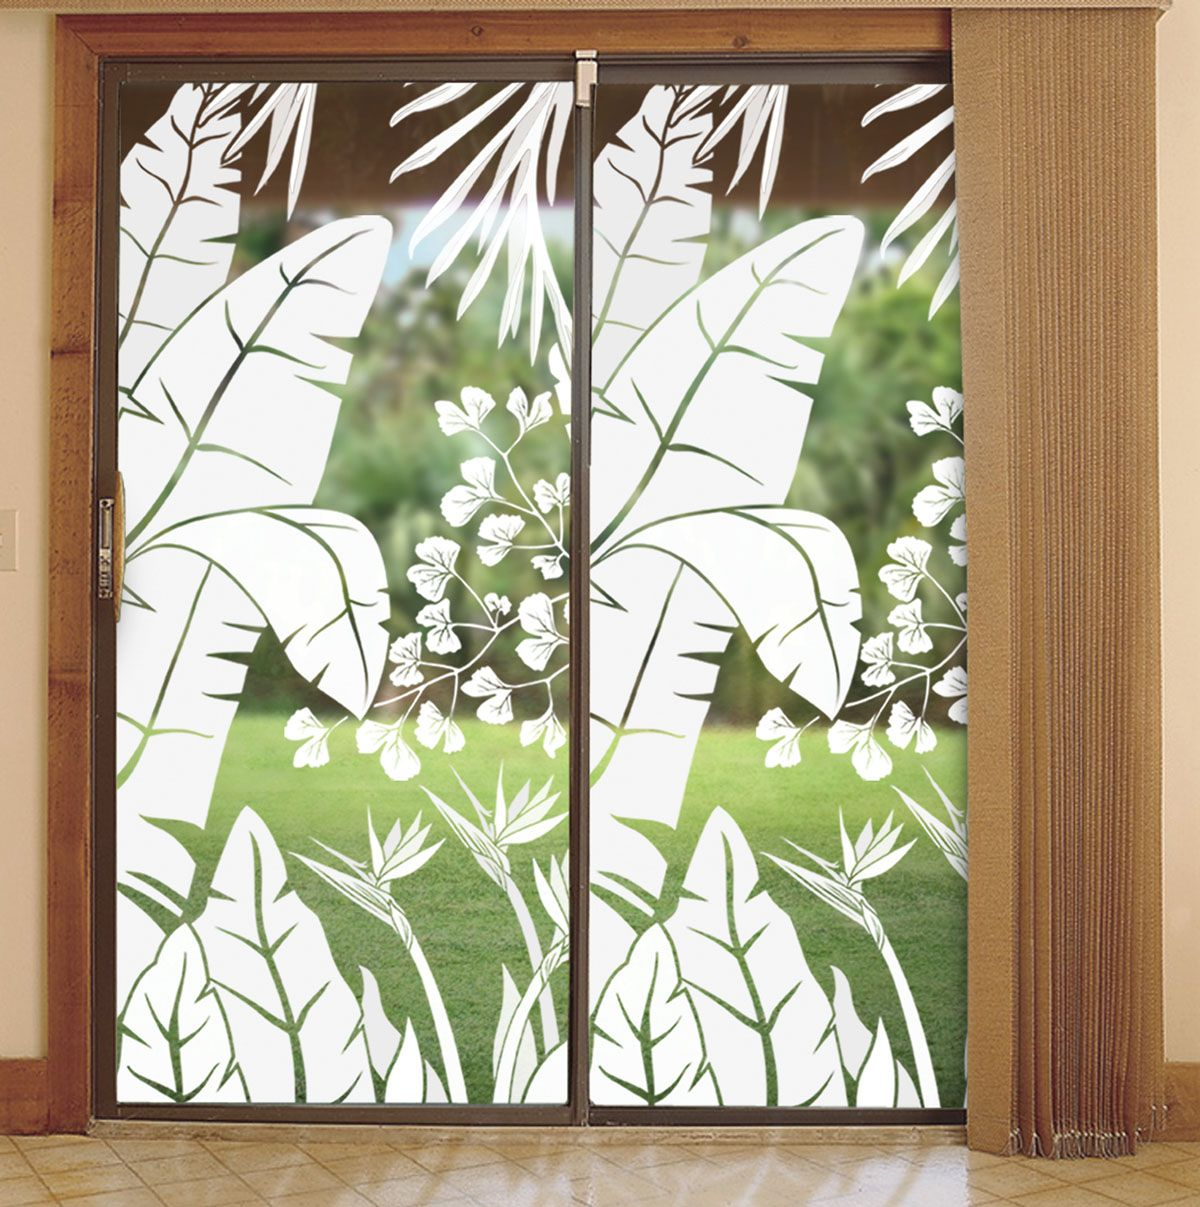 decorative glass window inserts. decorate sliding glass doors with the look of etched or stained Sliding Glass Doors Can Be Decorated  745 crafts hobbies